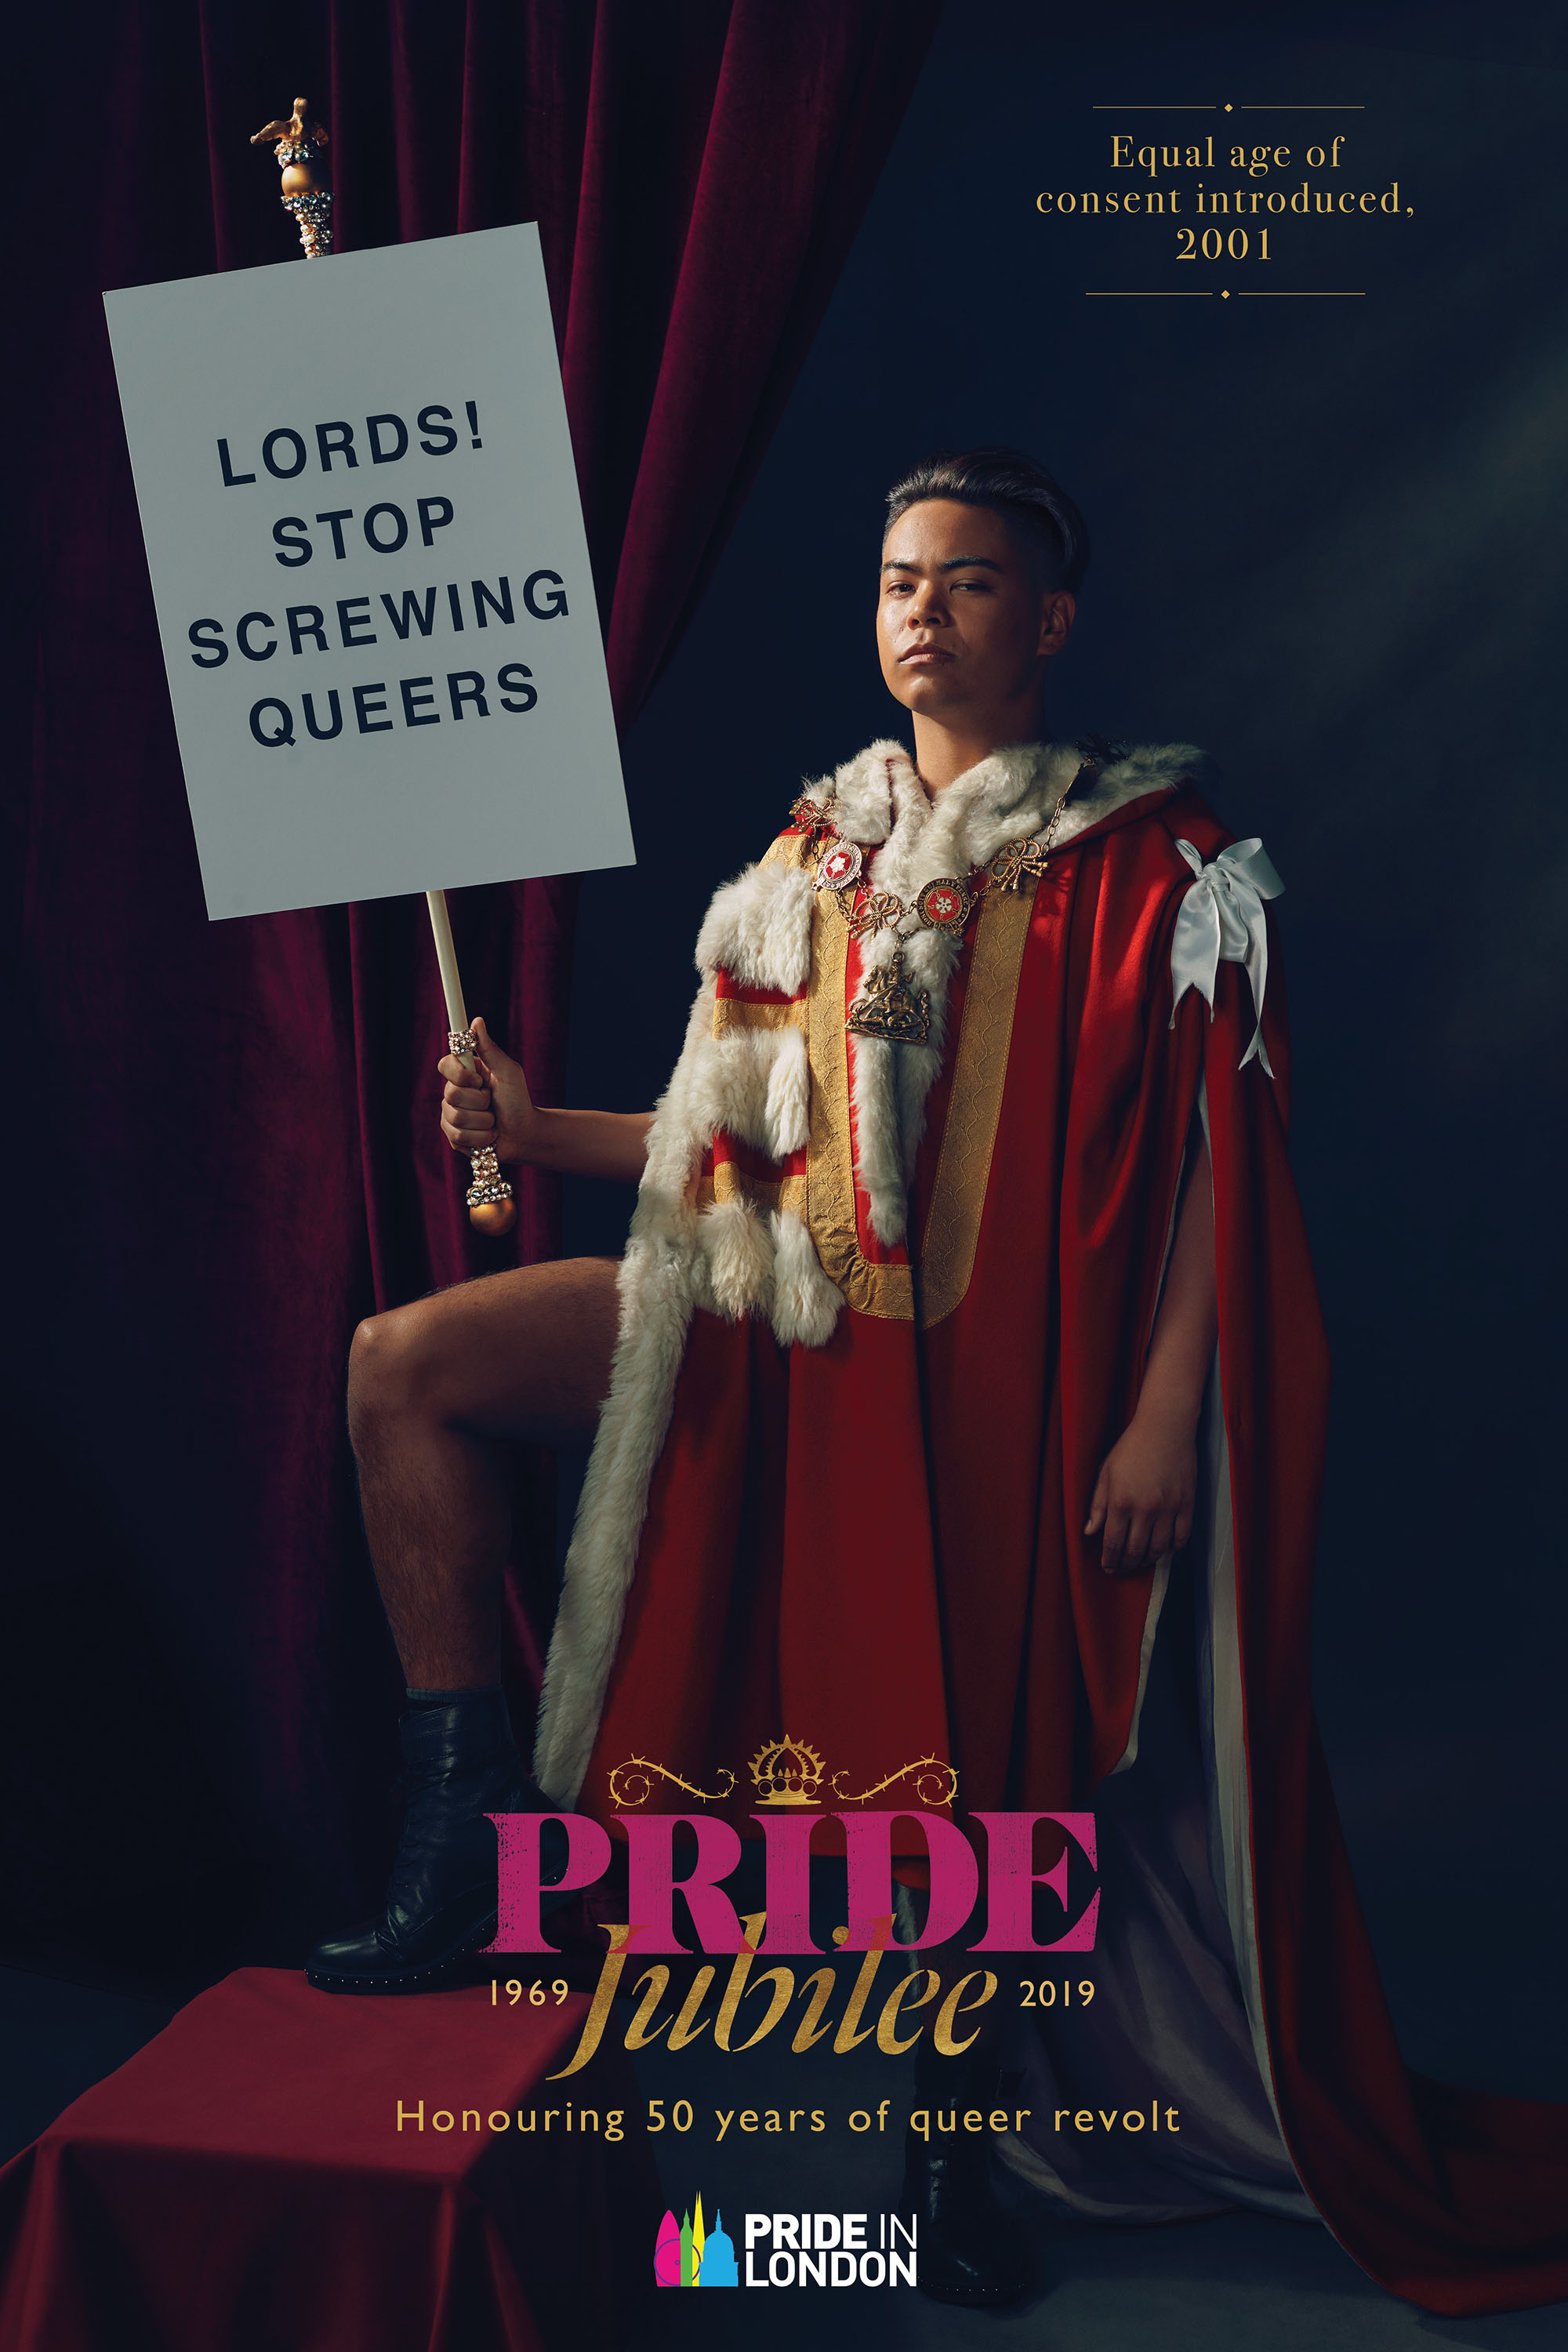 Pride in London - Pride Jubilee